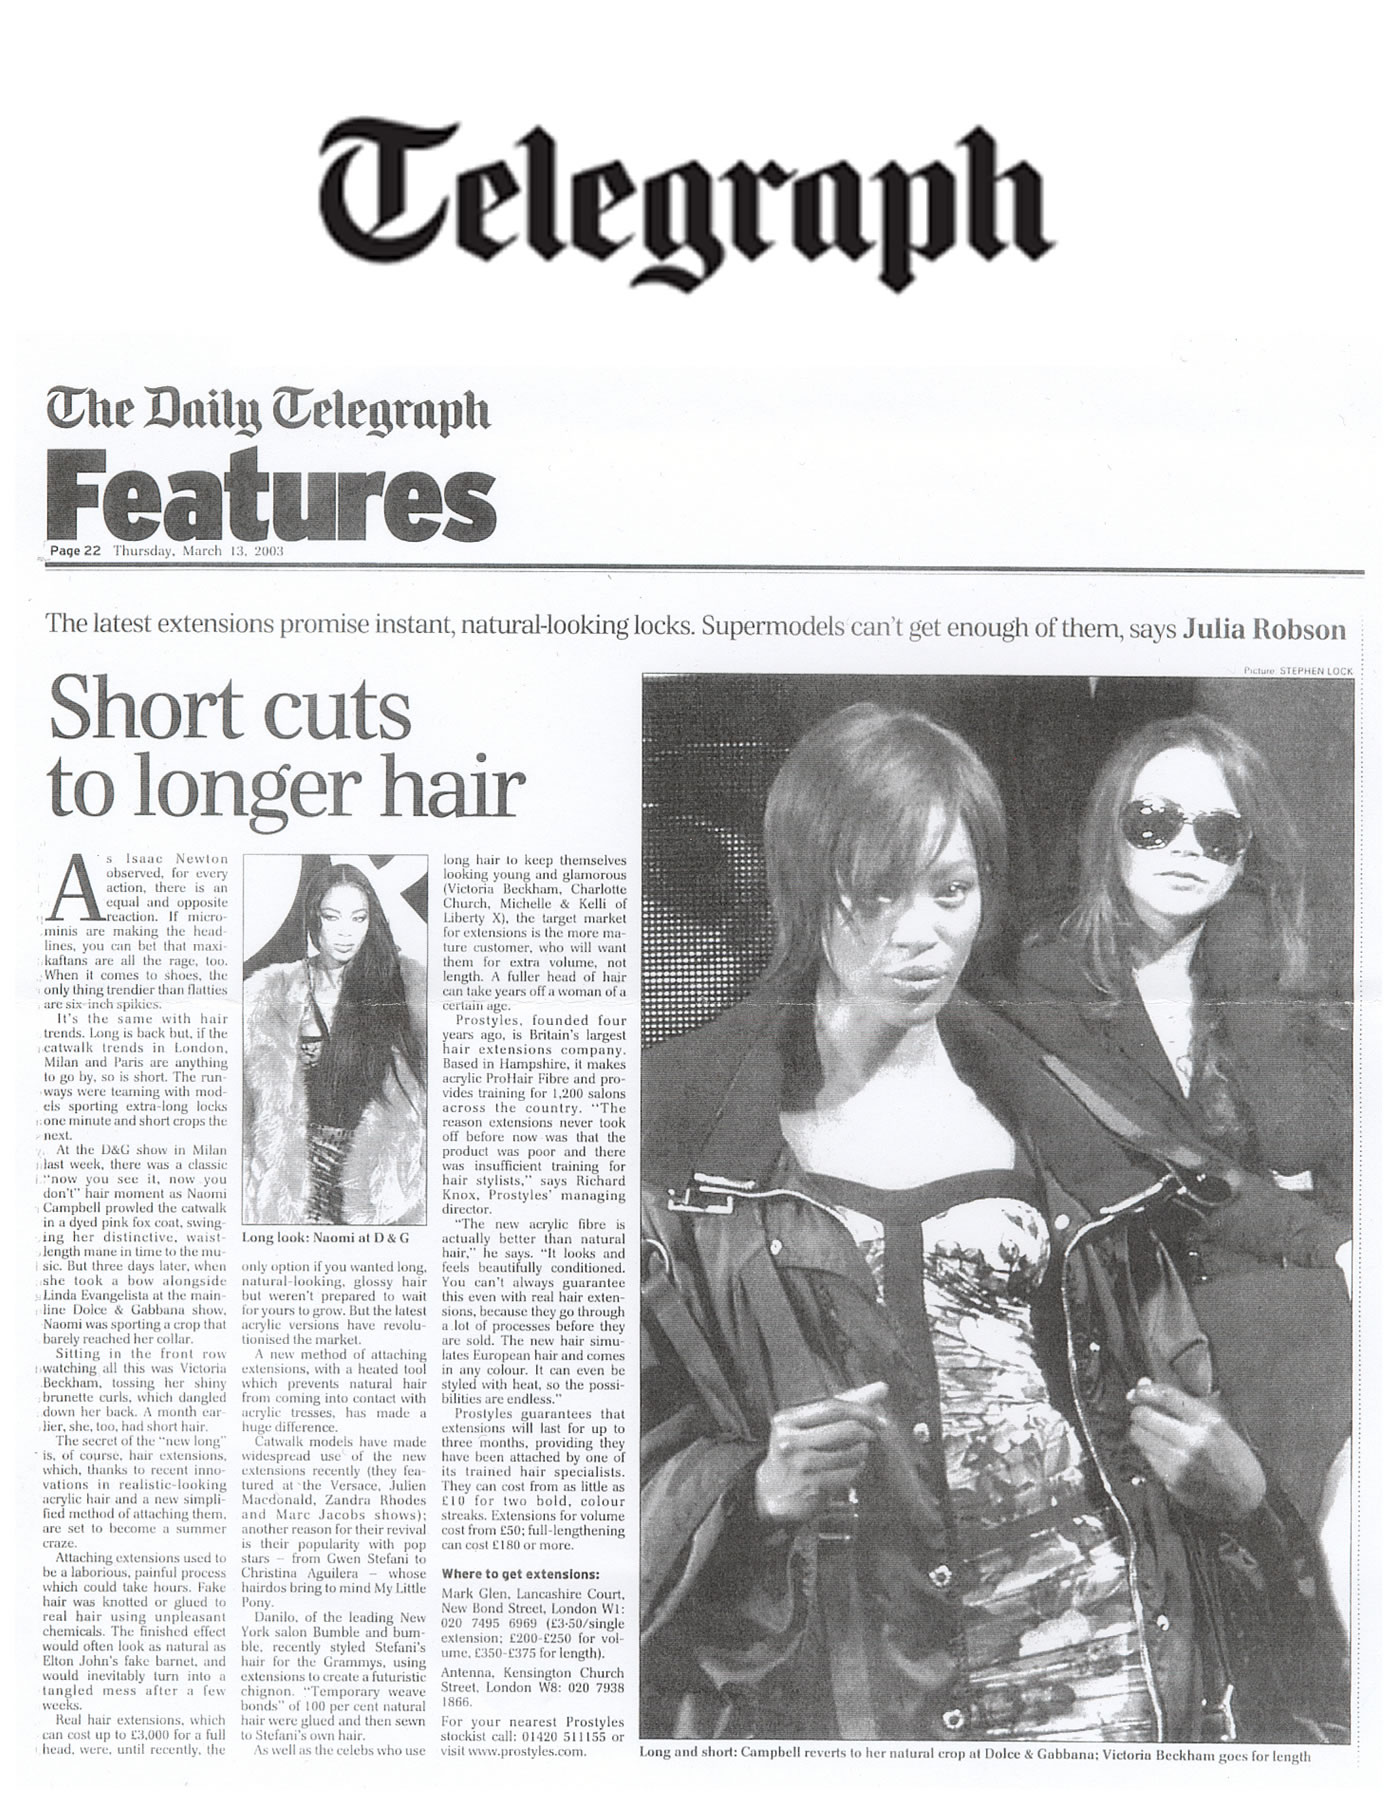 Celebrity hair extensions in The Daily Telegraph